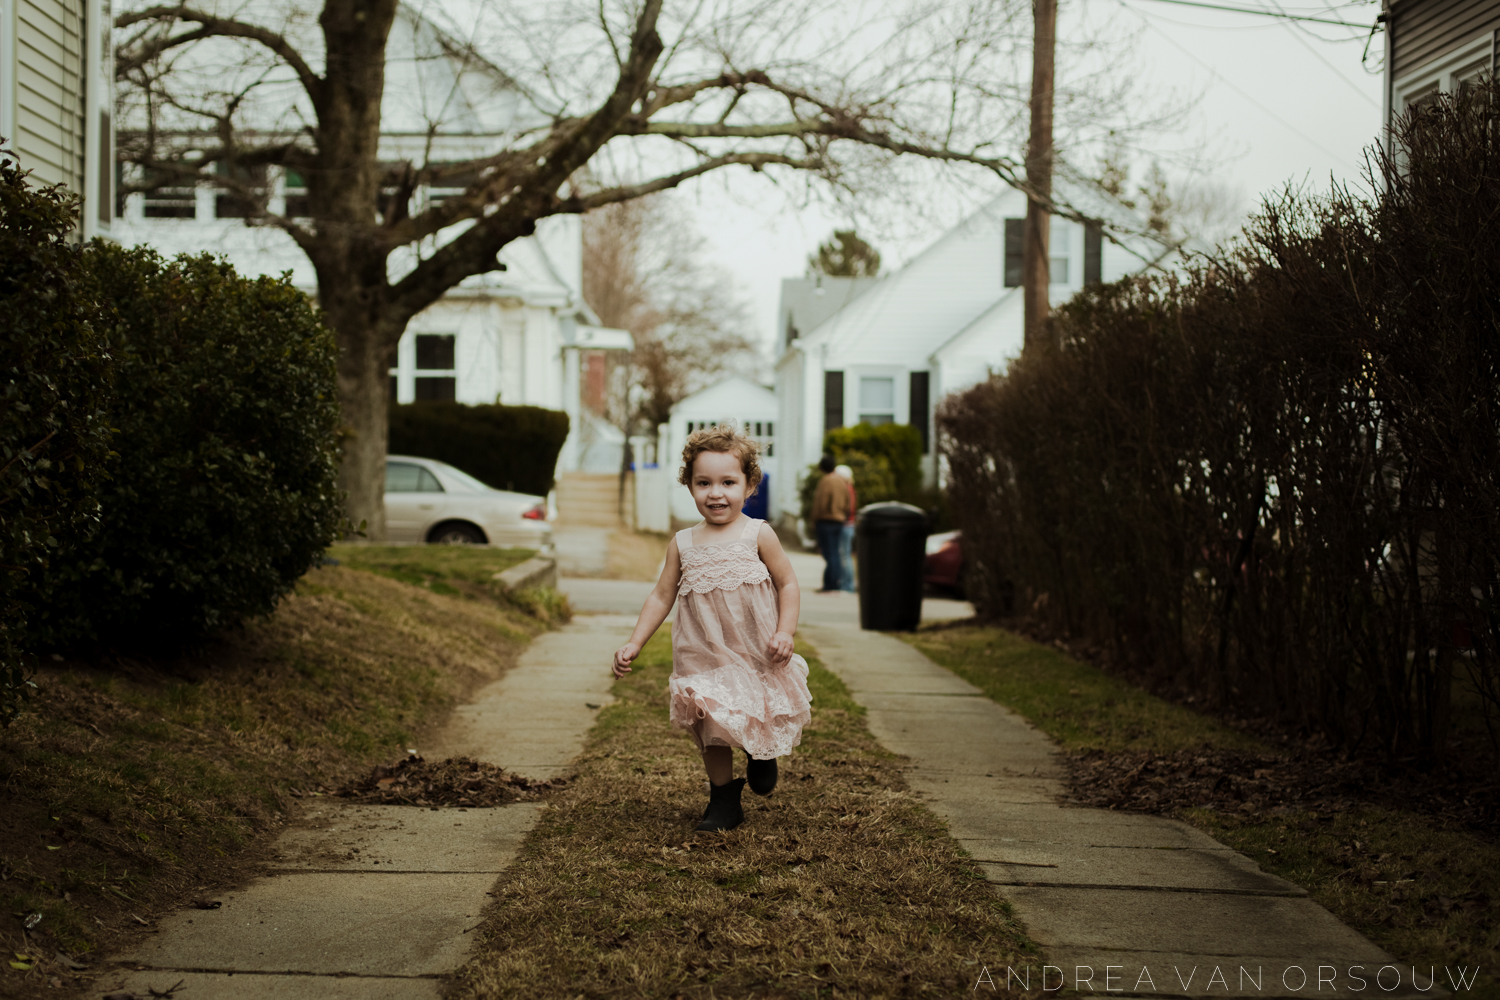 running_playing_outside_childhood_providence_rhode_island_lifestyle_photographer.jpg